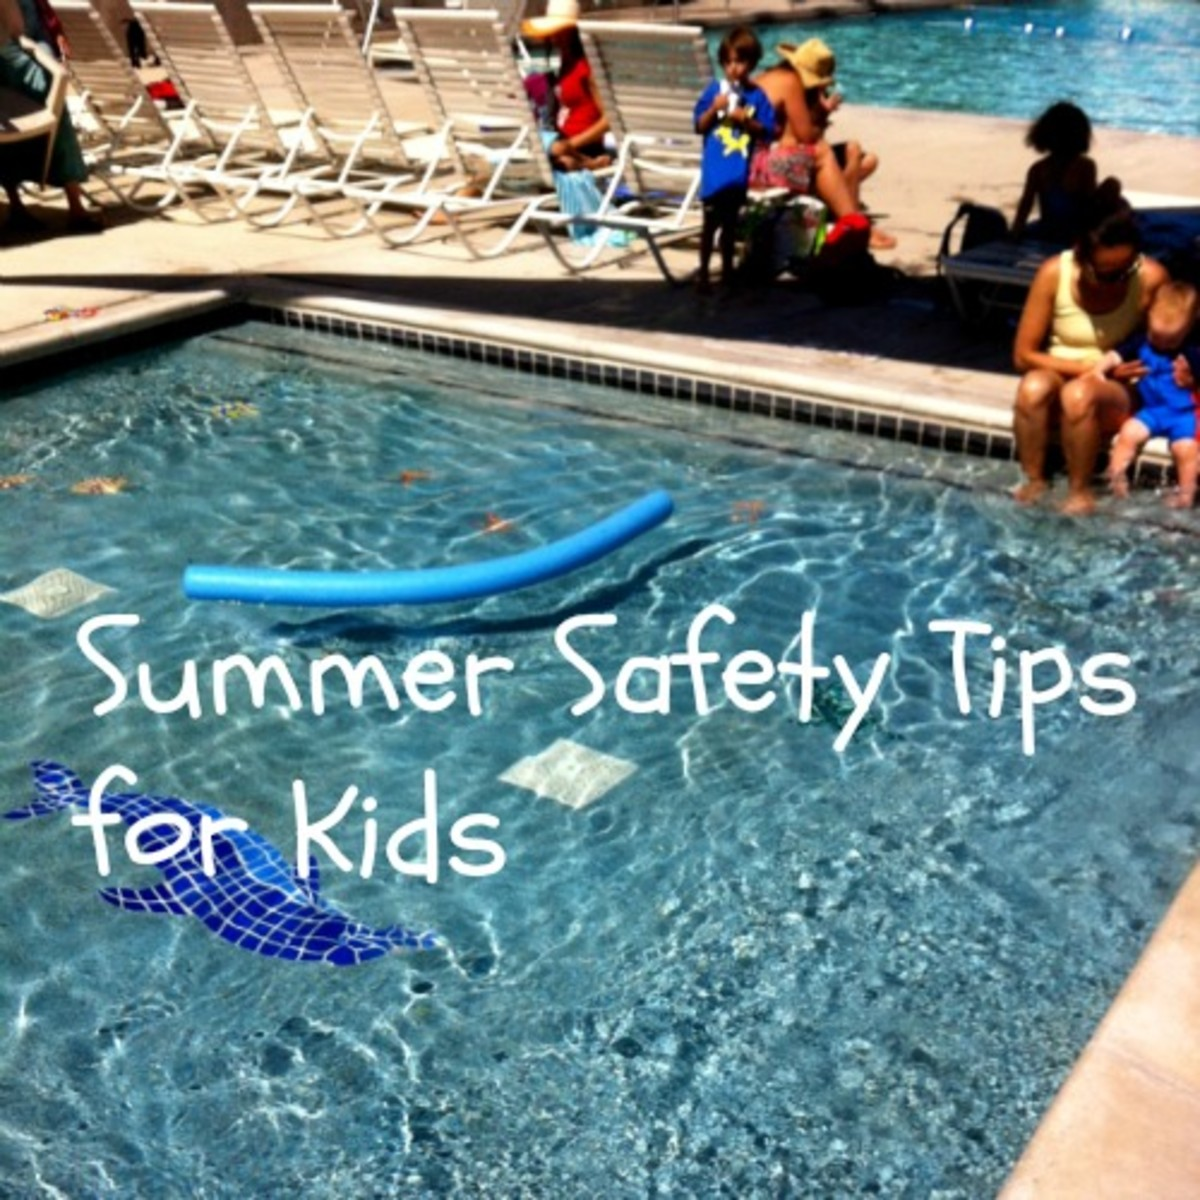 Summer Safety Tips for Kids - Open Water